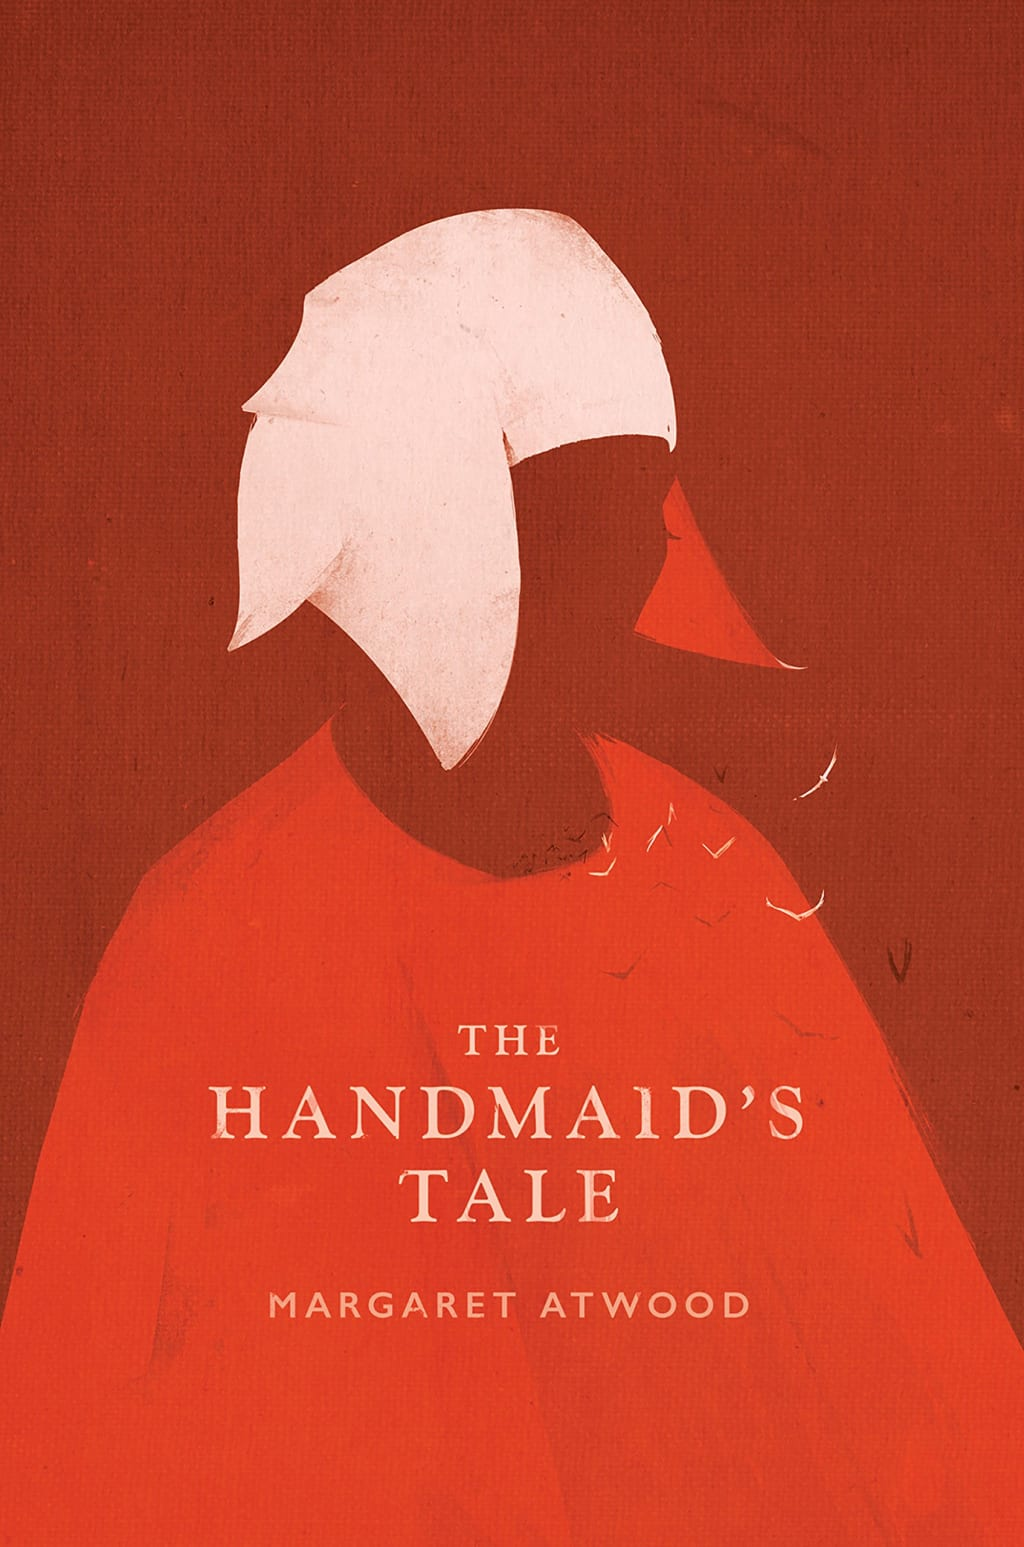 'The Handmaid's Tale' Analysis: Chapters 15-17